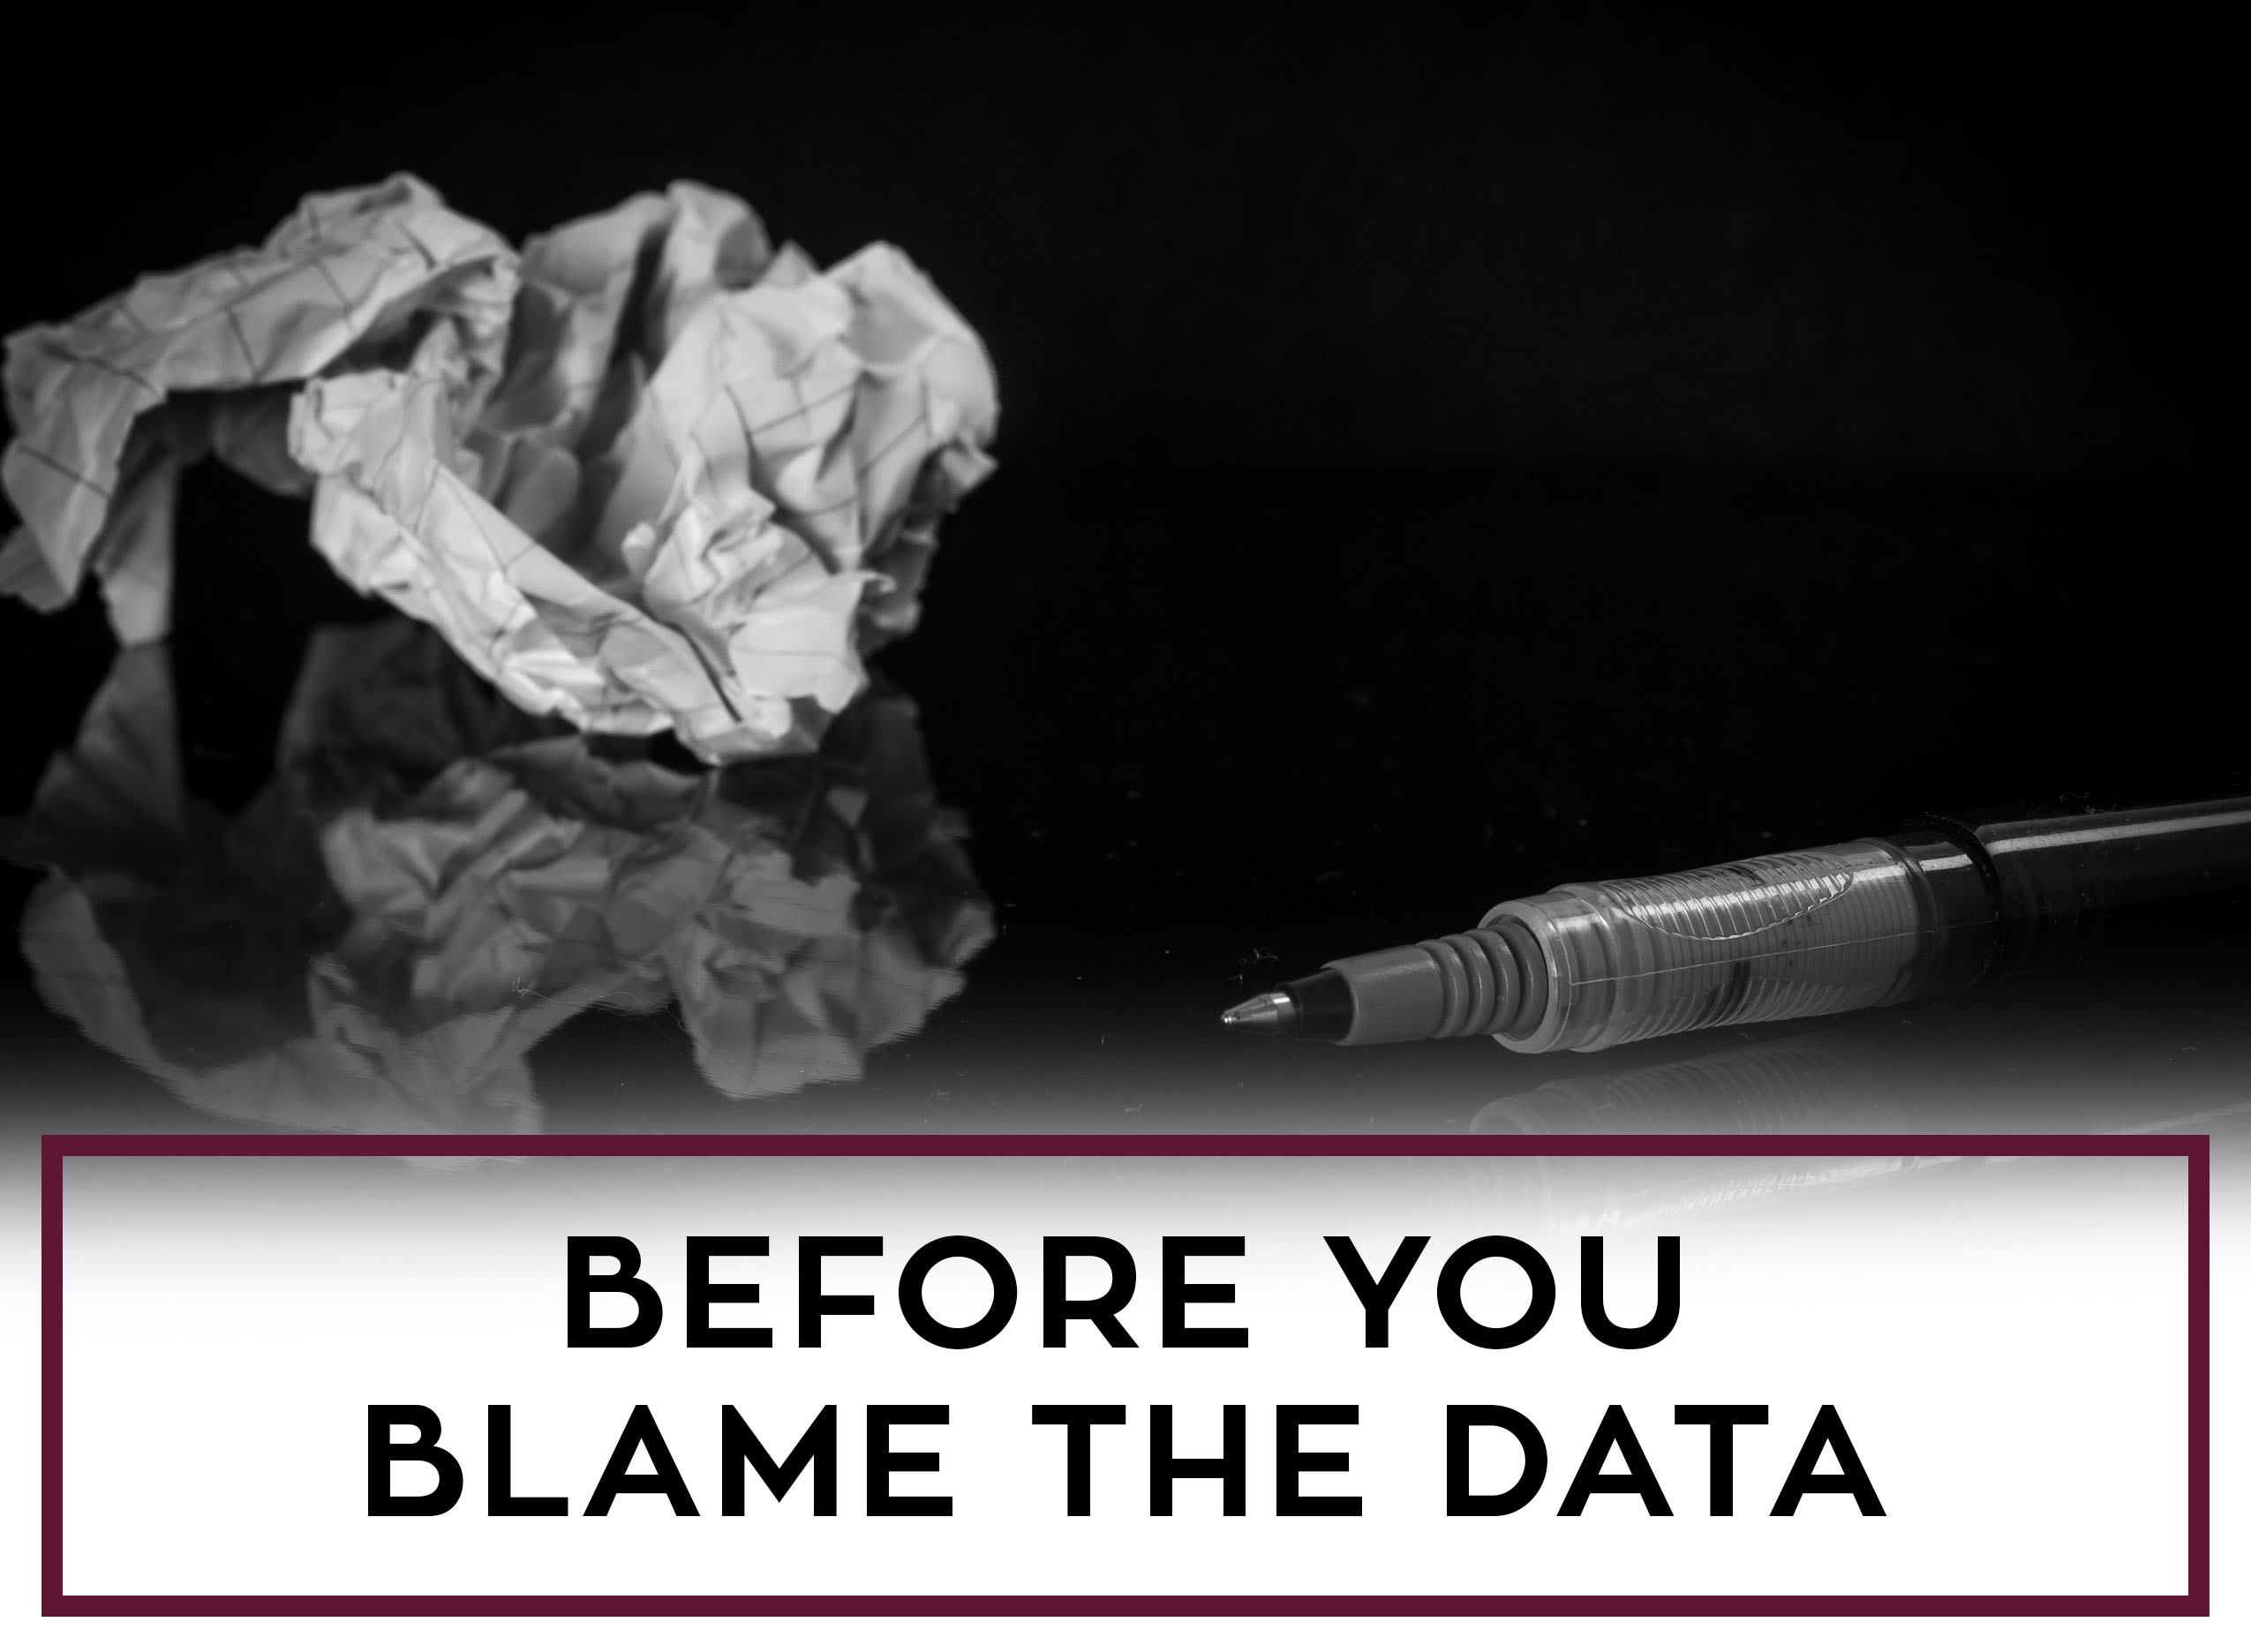 Before you blame the data